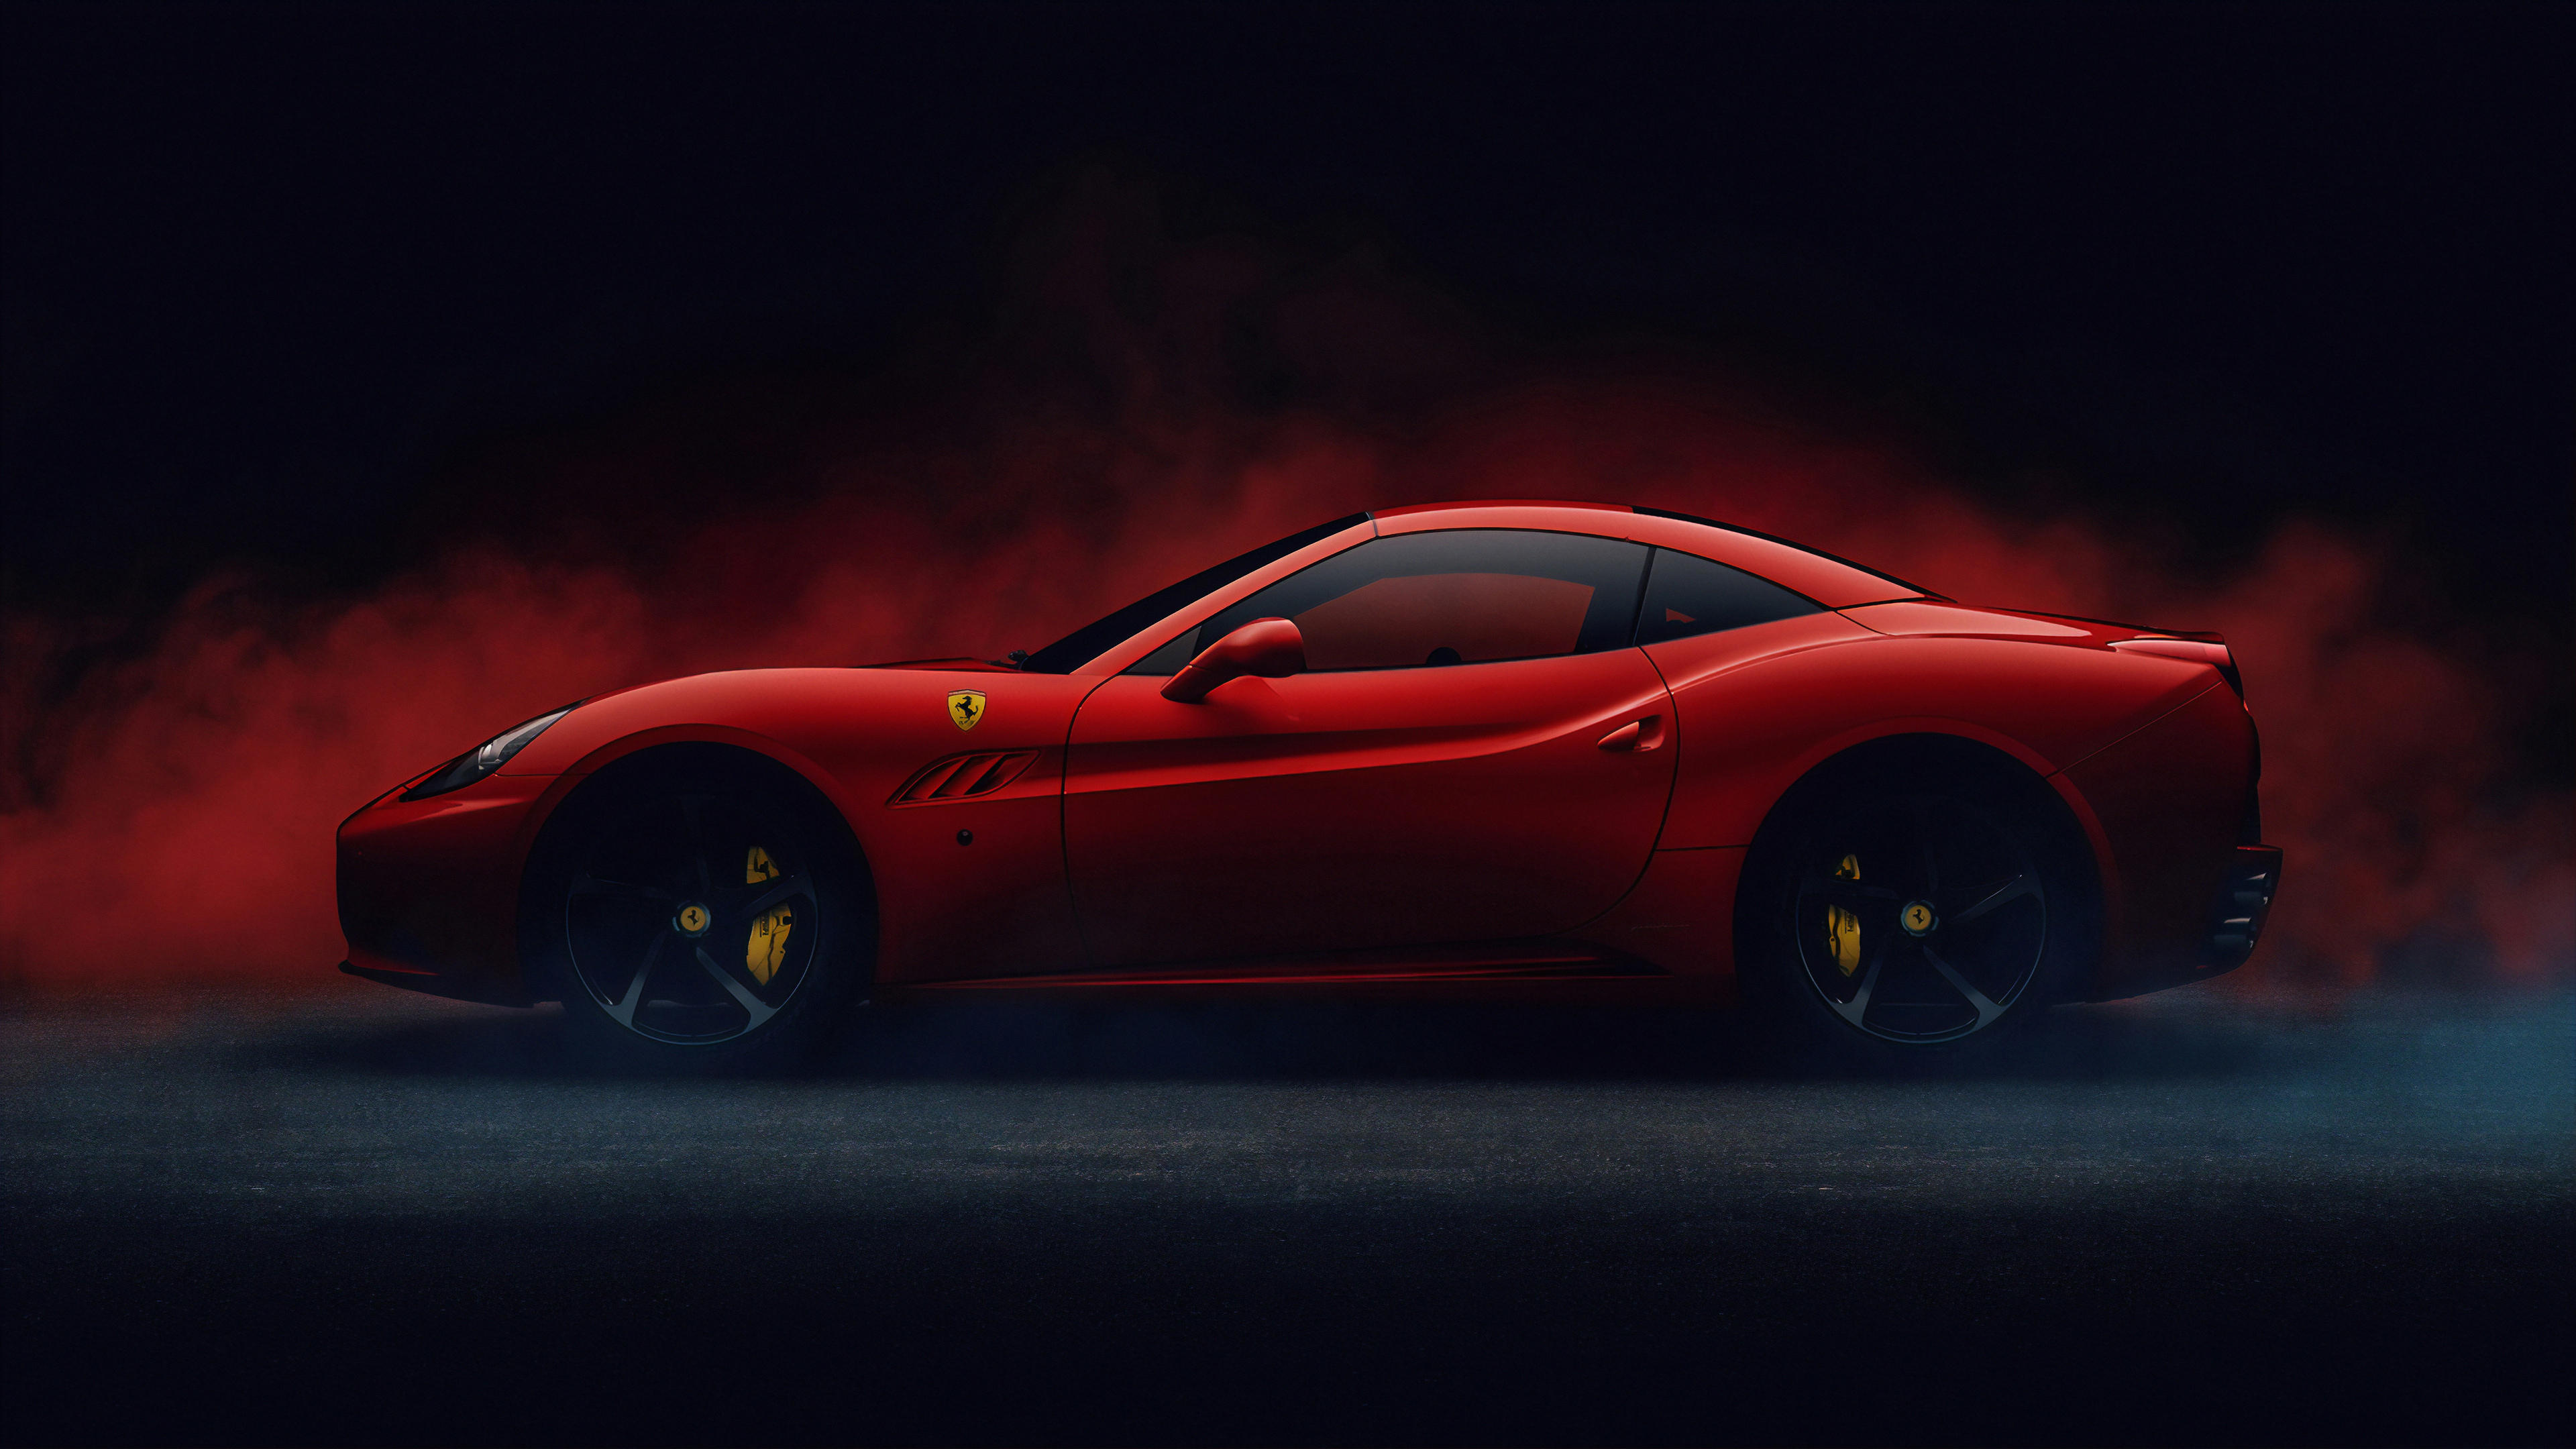 1366x768 California Ferrari 1366x768 Resolution Hd 4k Wallpapers Images Backgrounds Photos And Pictures